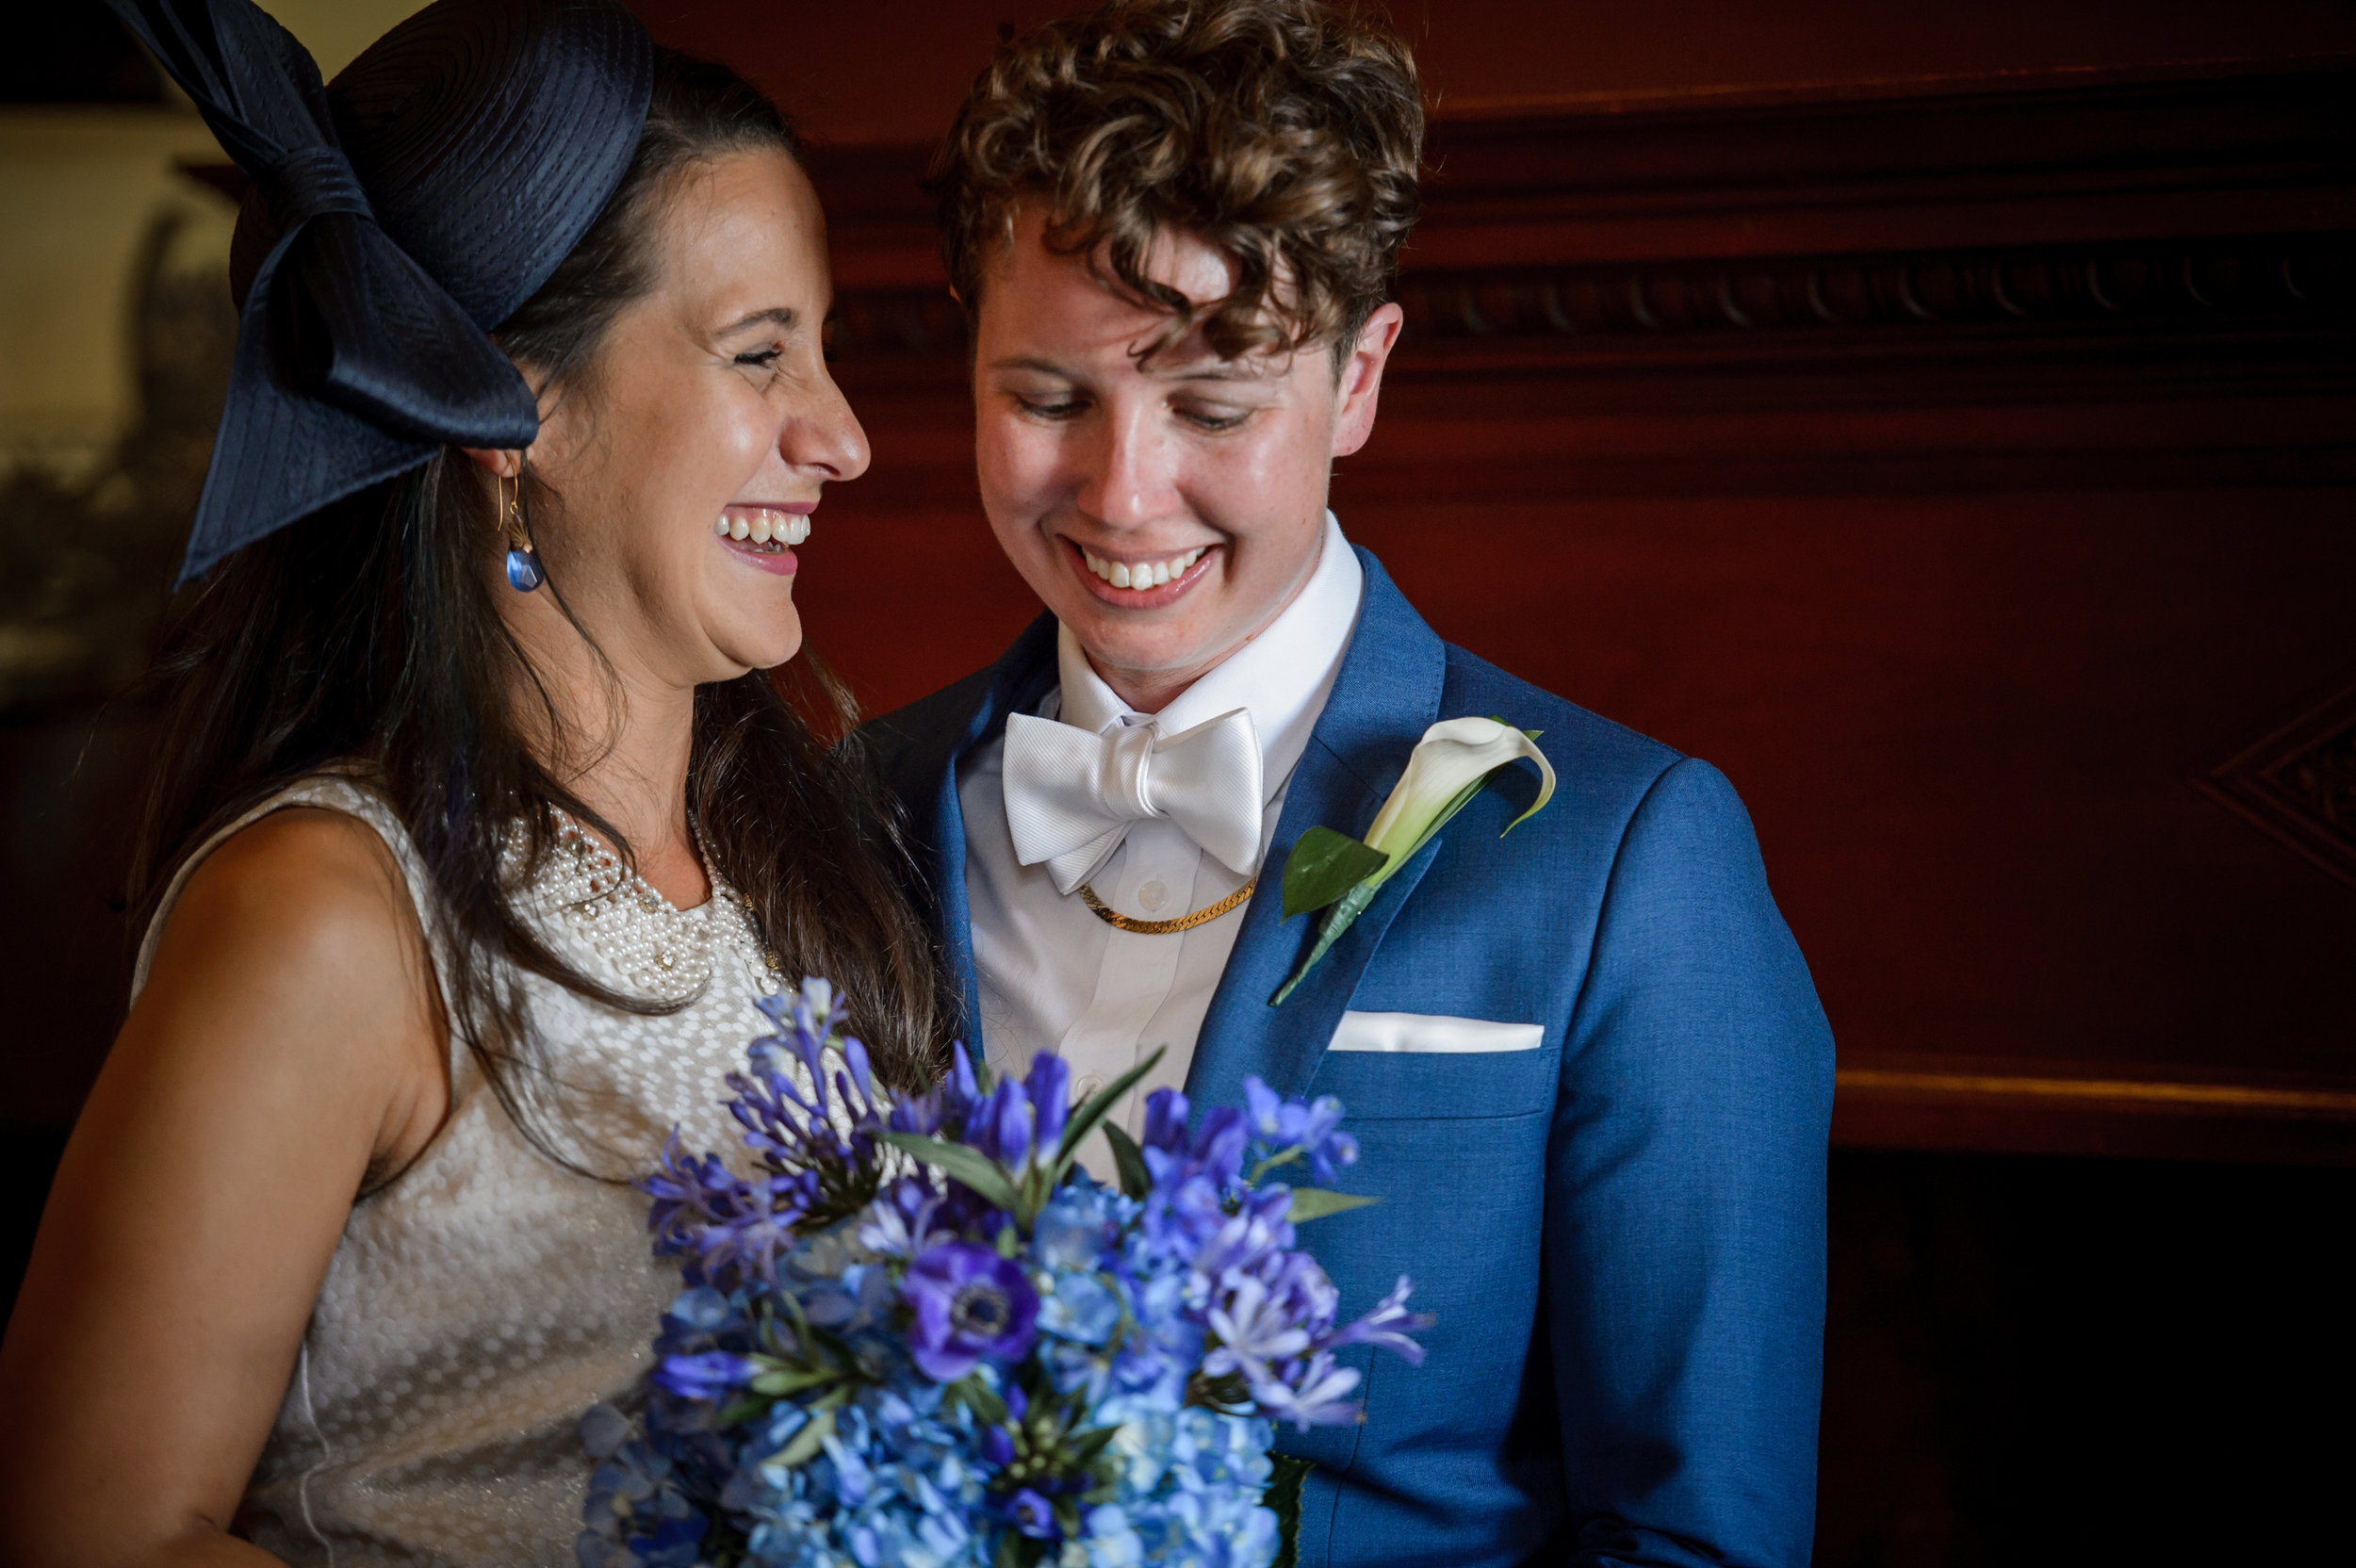 Cambridge City Hall Queer Intimate Wedding